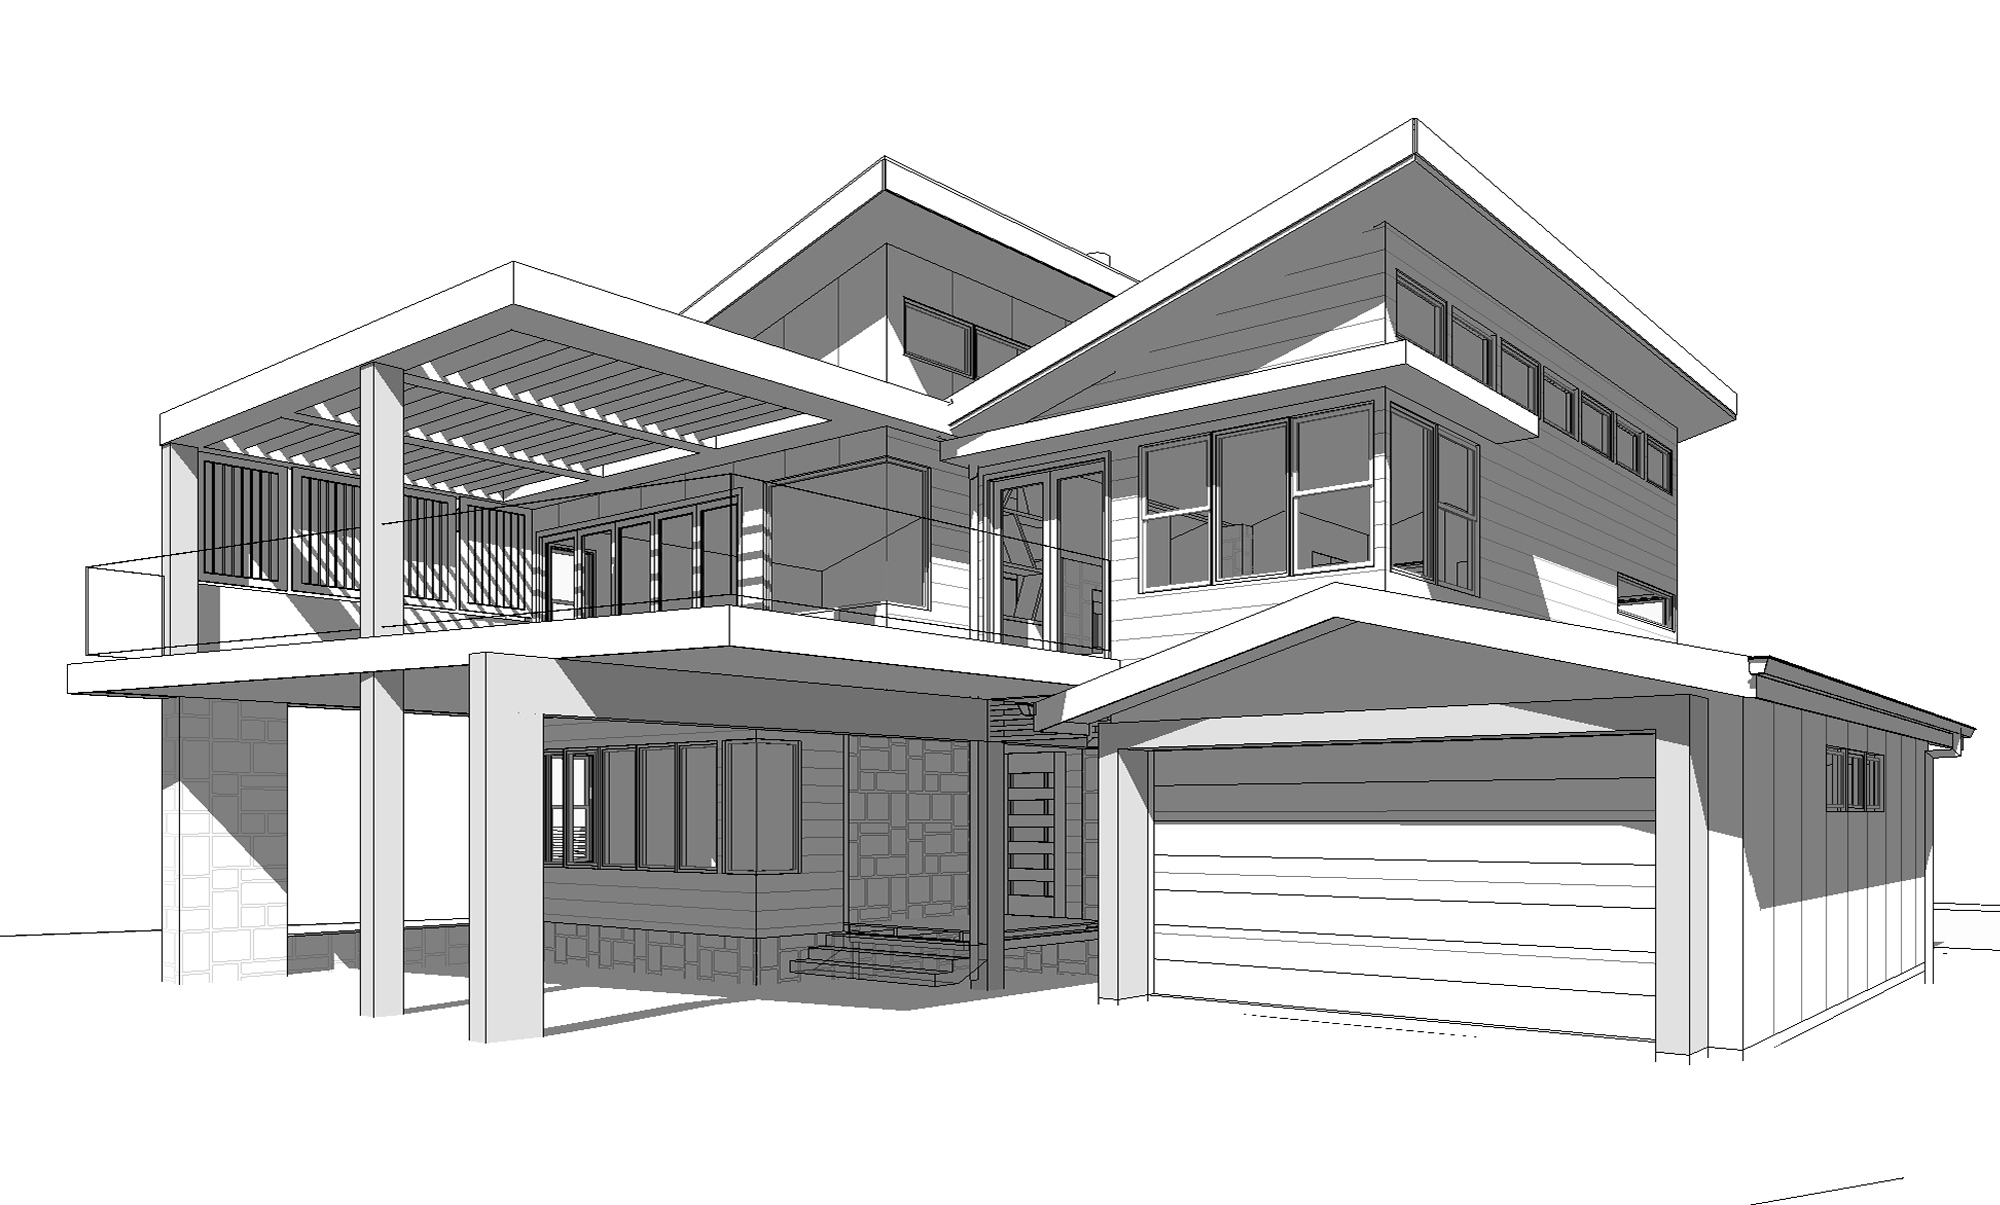 Architecture design drawing building architectural drawing for Architectural design home plans